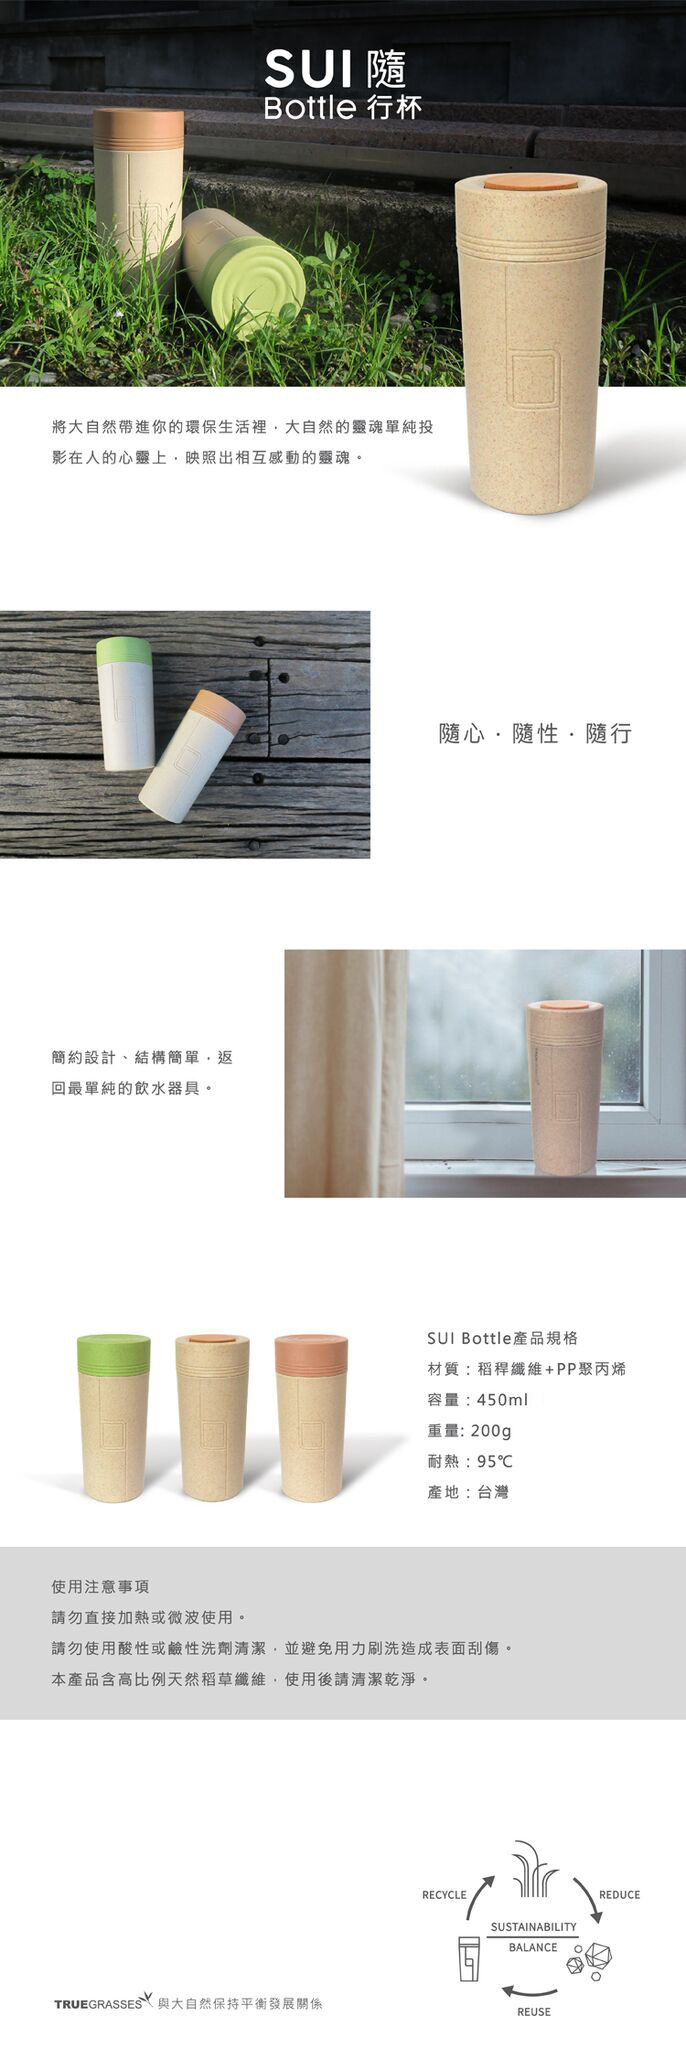 TRUEGRASSES|SUI Bottle 真稻隨行杯(茶綠)